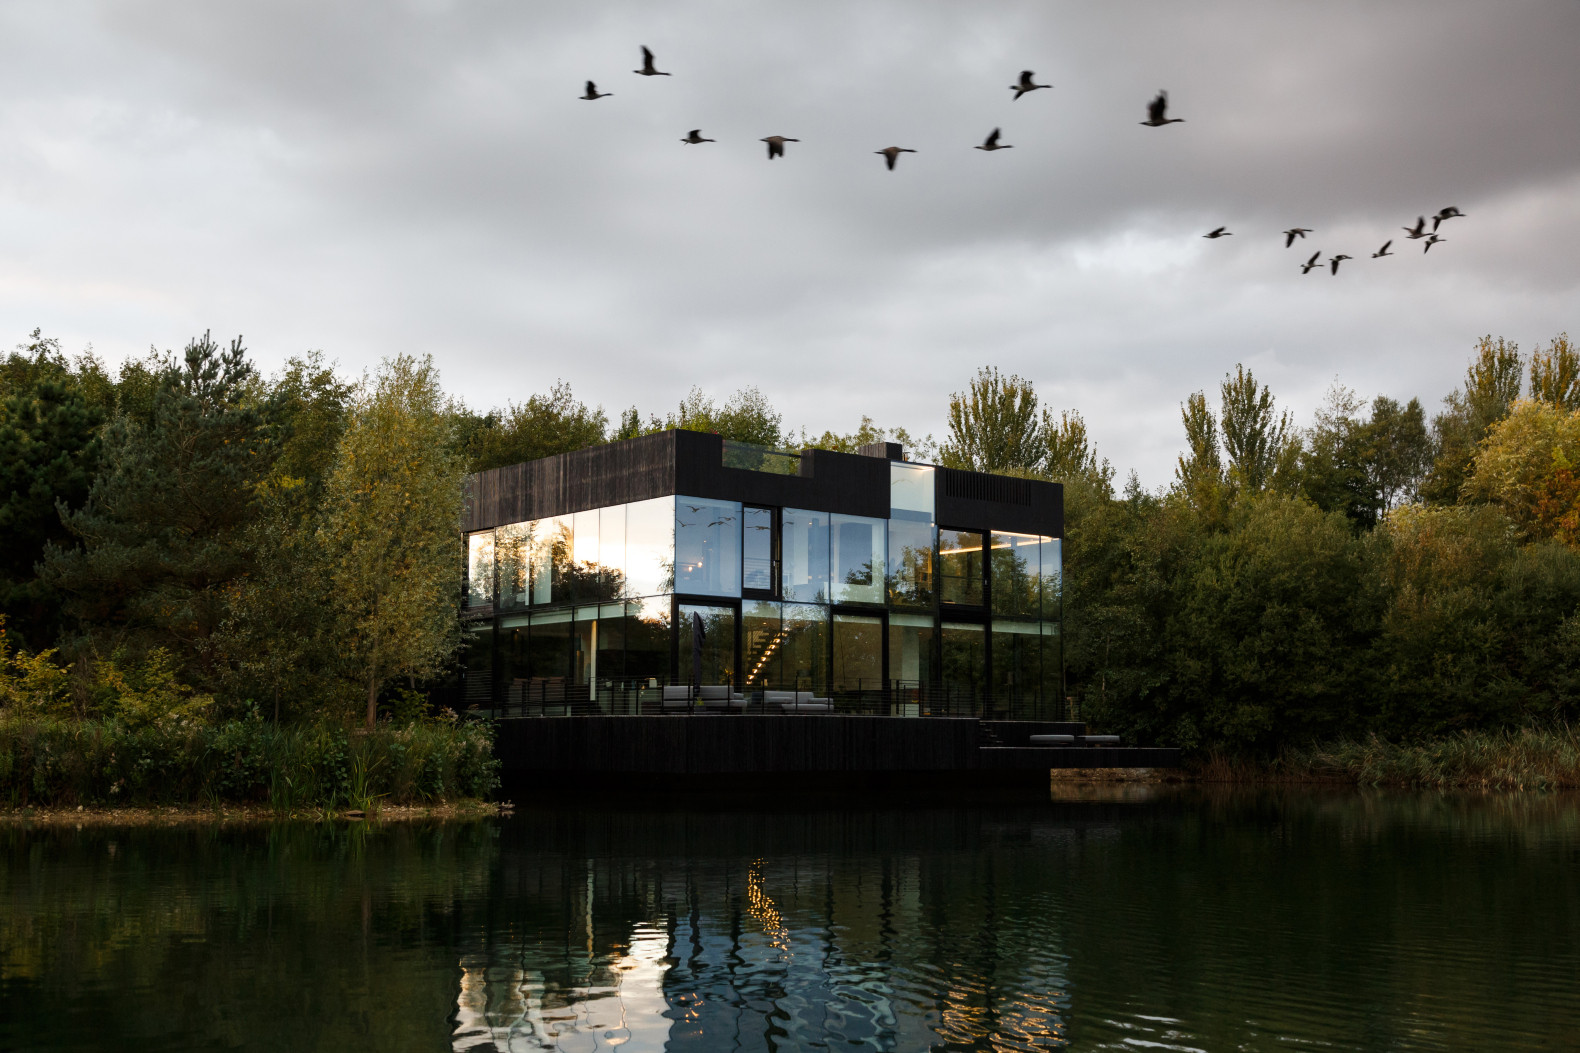 Mecanoo unveils stunning glass lake house that harmonizes with nature